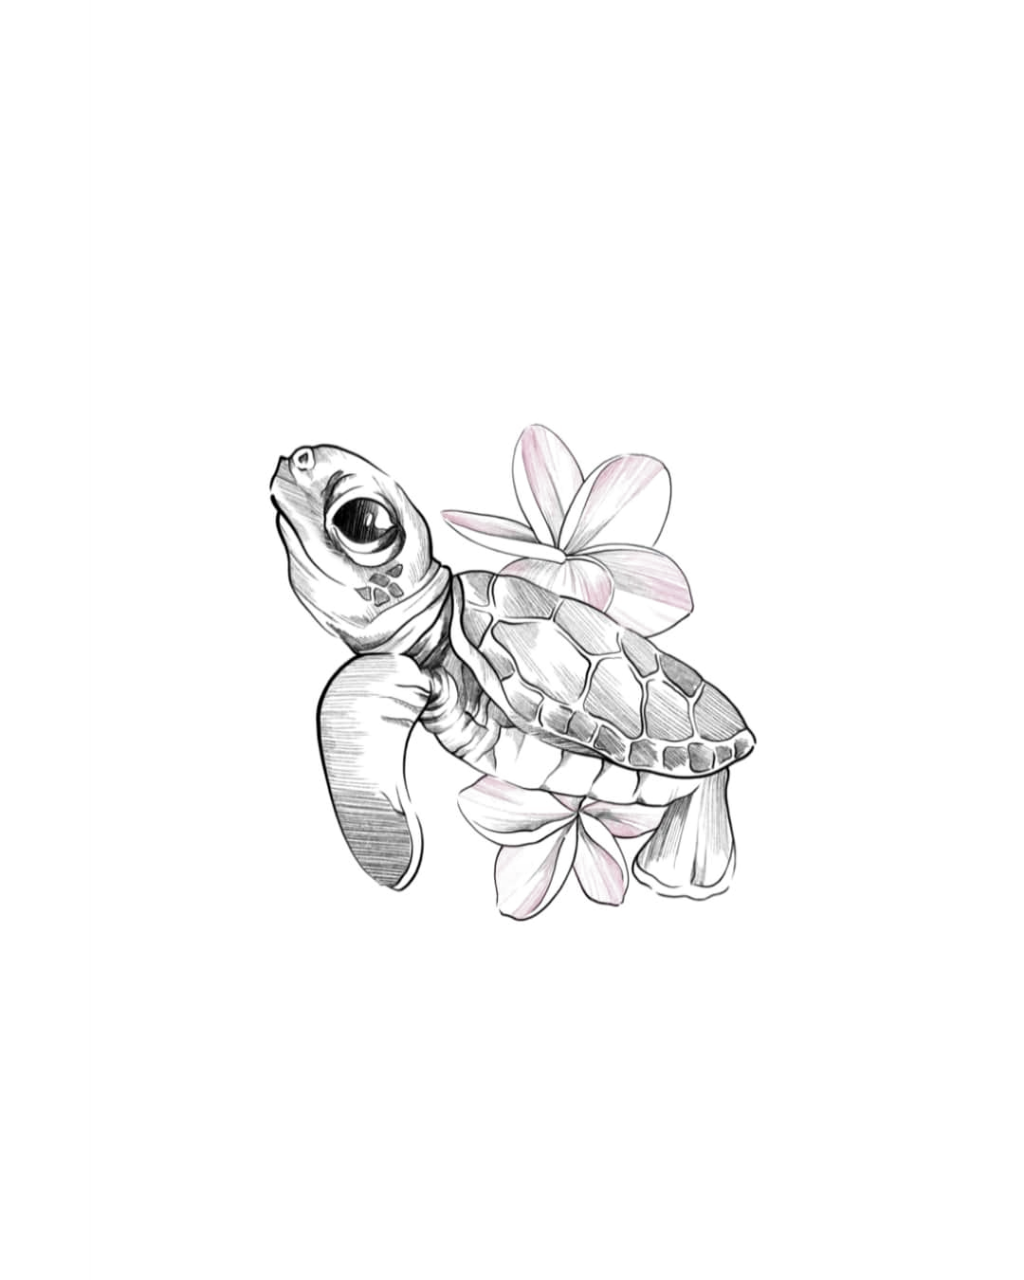 Turtle Eeek So Excited To Tattoo This Today Drawings Drawing Ideas Draw In 2020 Sketches Drawings Cute Turtle Tattoo